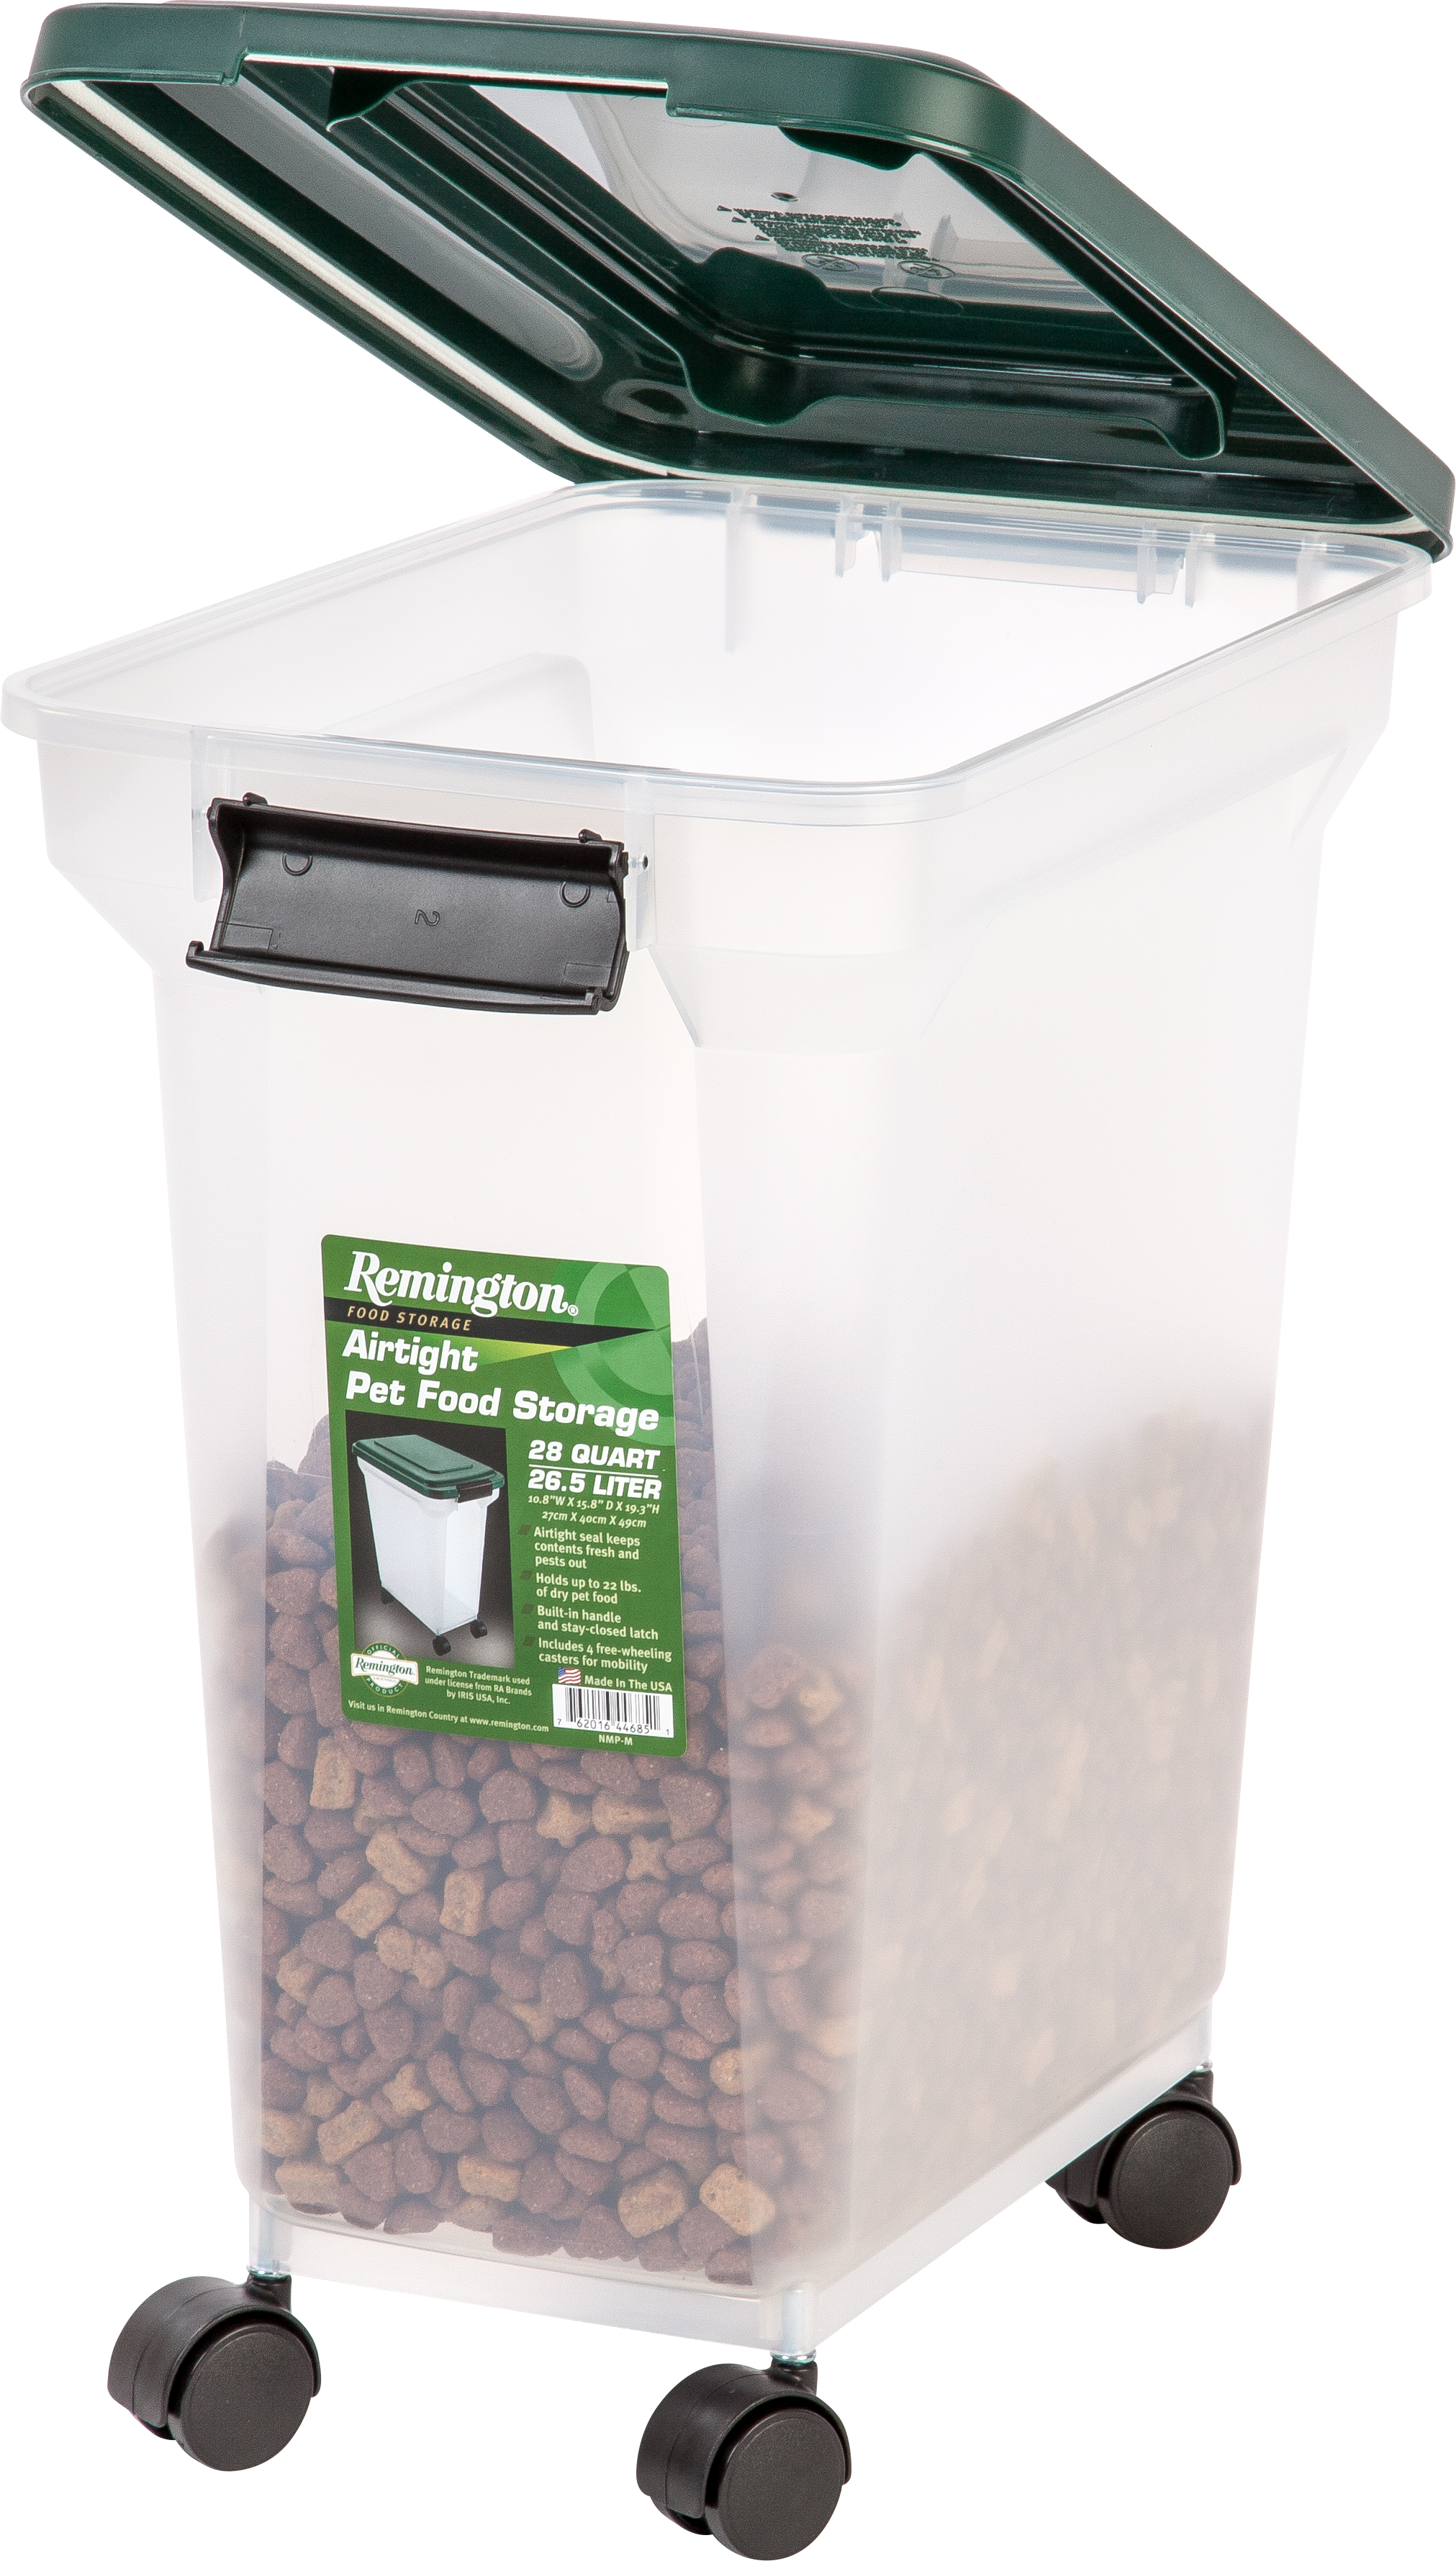 $11.99 (reg $25.59) Remington Airtight Pet Food Storage Container